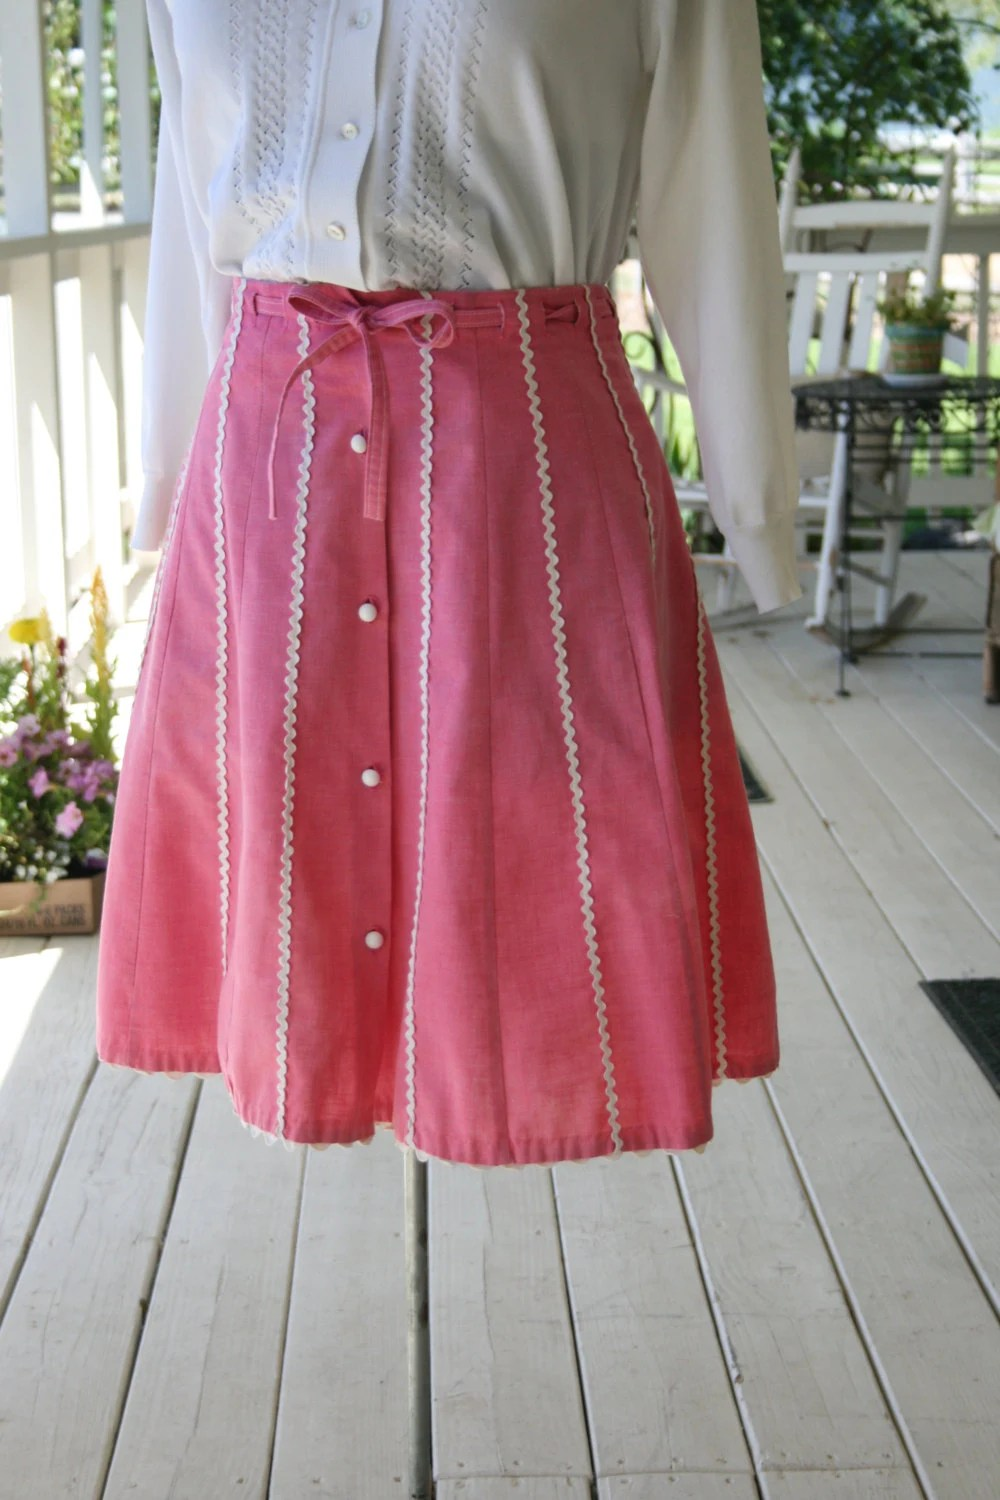 "Vintage 50's Skirt A Line Skirt Pink Rick Rack Trim Cotton""Meadowbank"" Size Small - Medium"